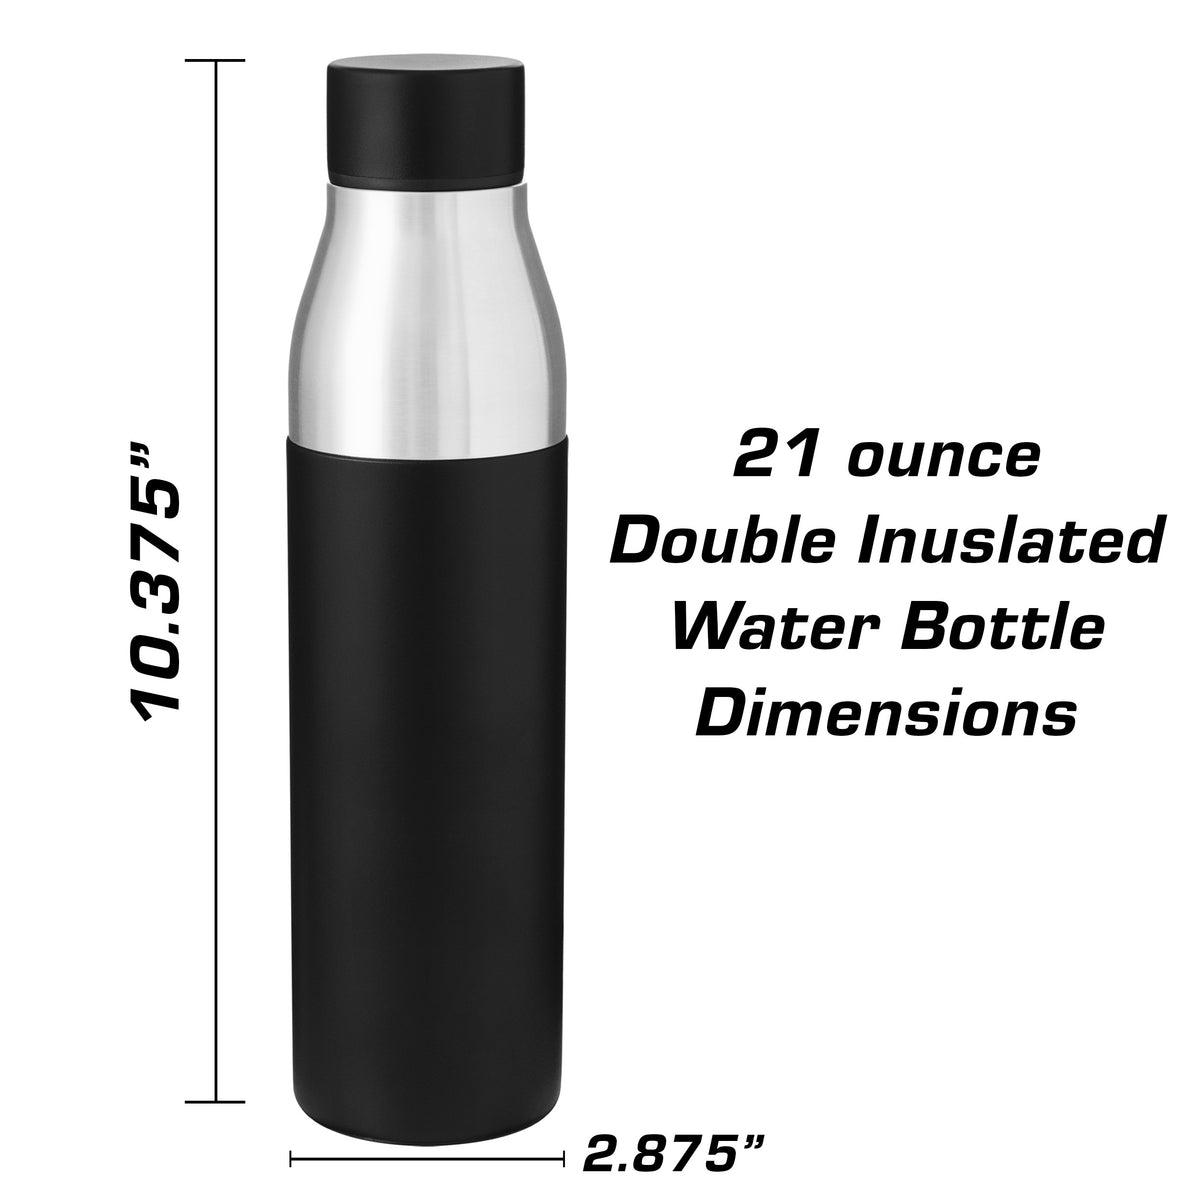 Toyota FJ Cruiser Side Profile Insulated Stainless Steel Water Bottle - 21 oz